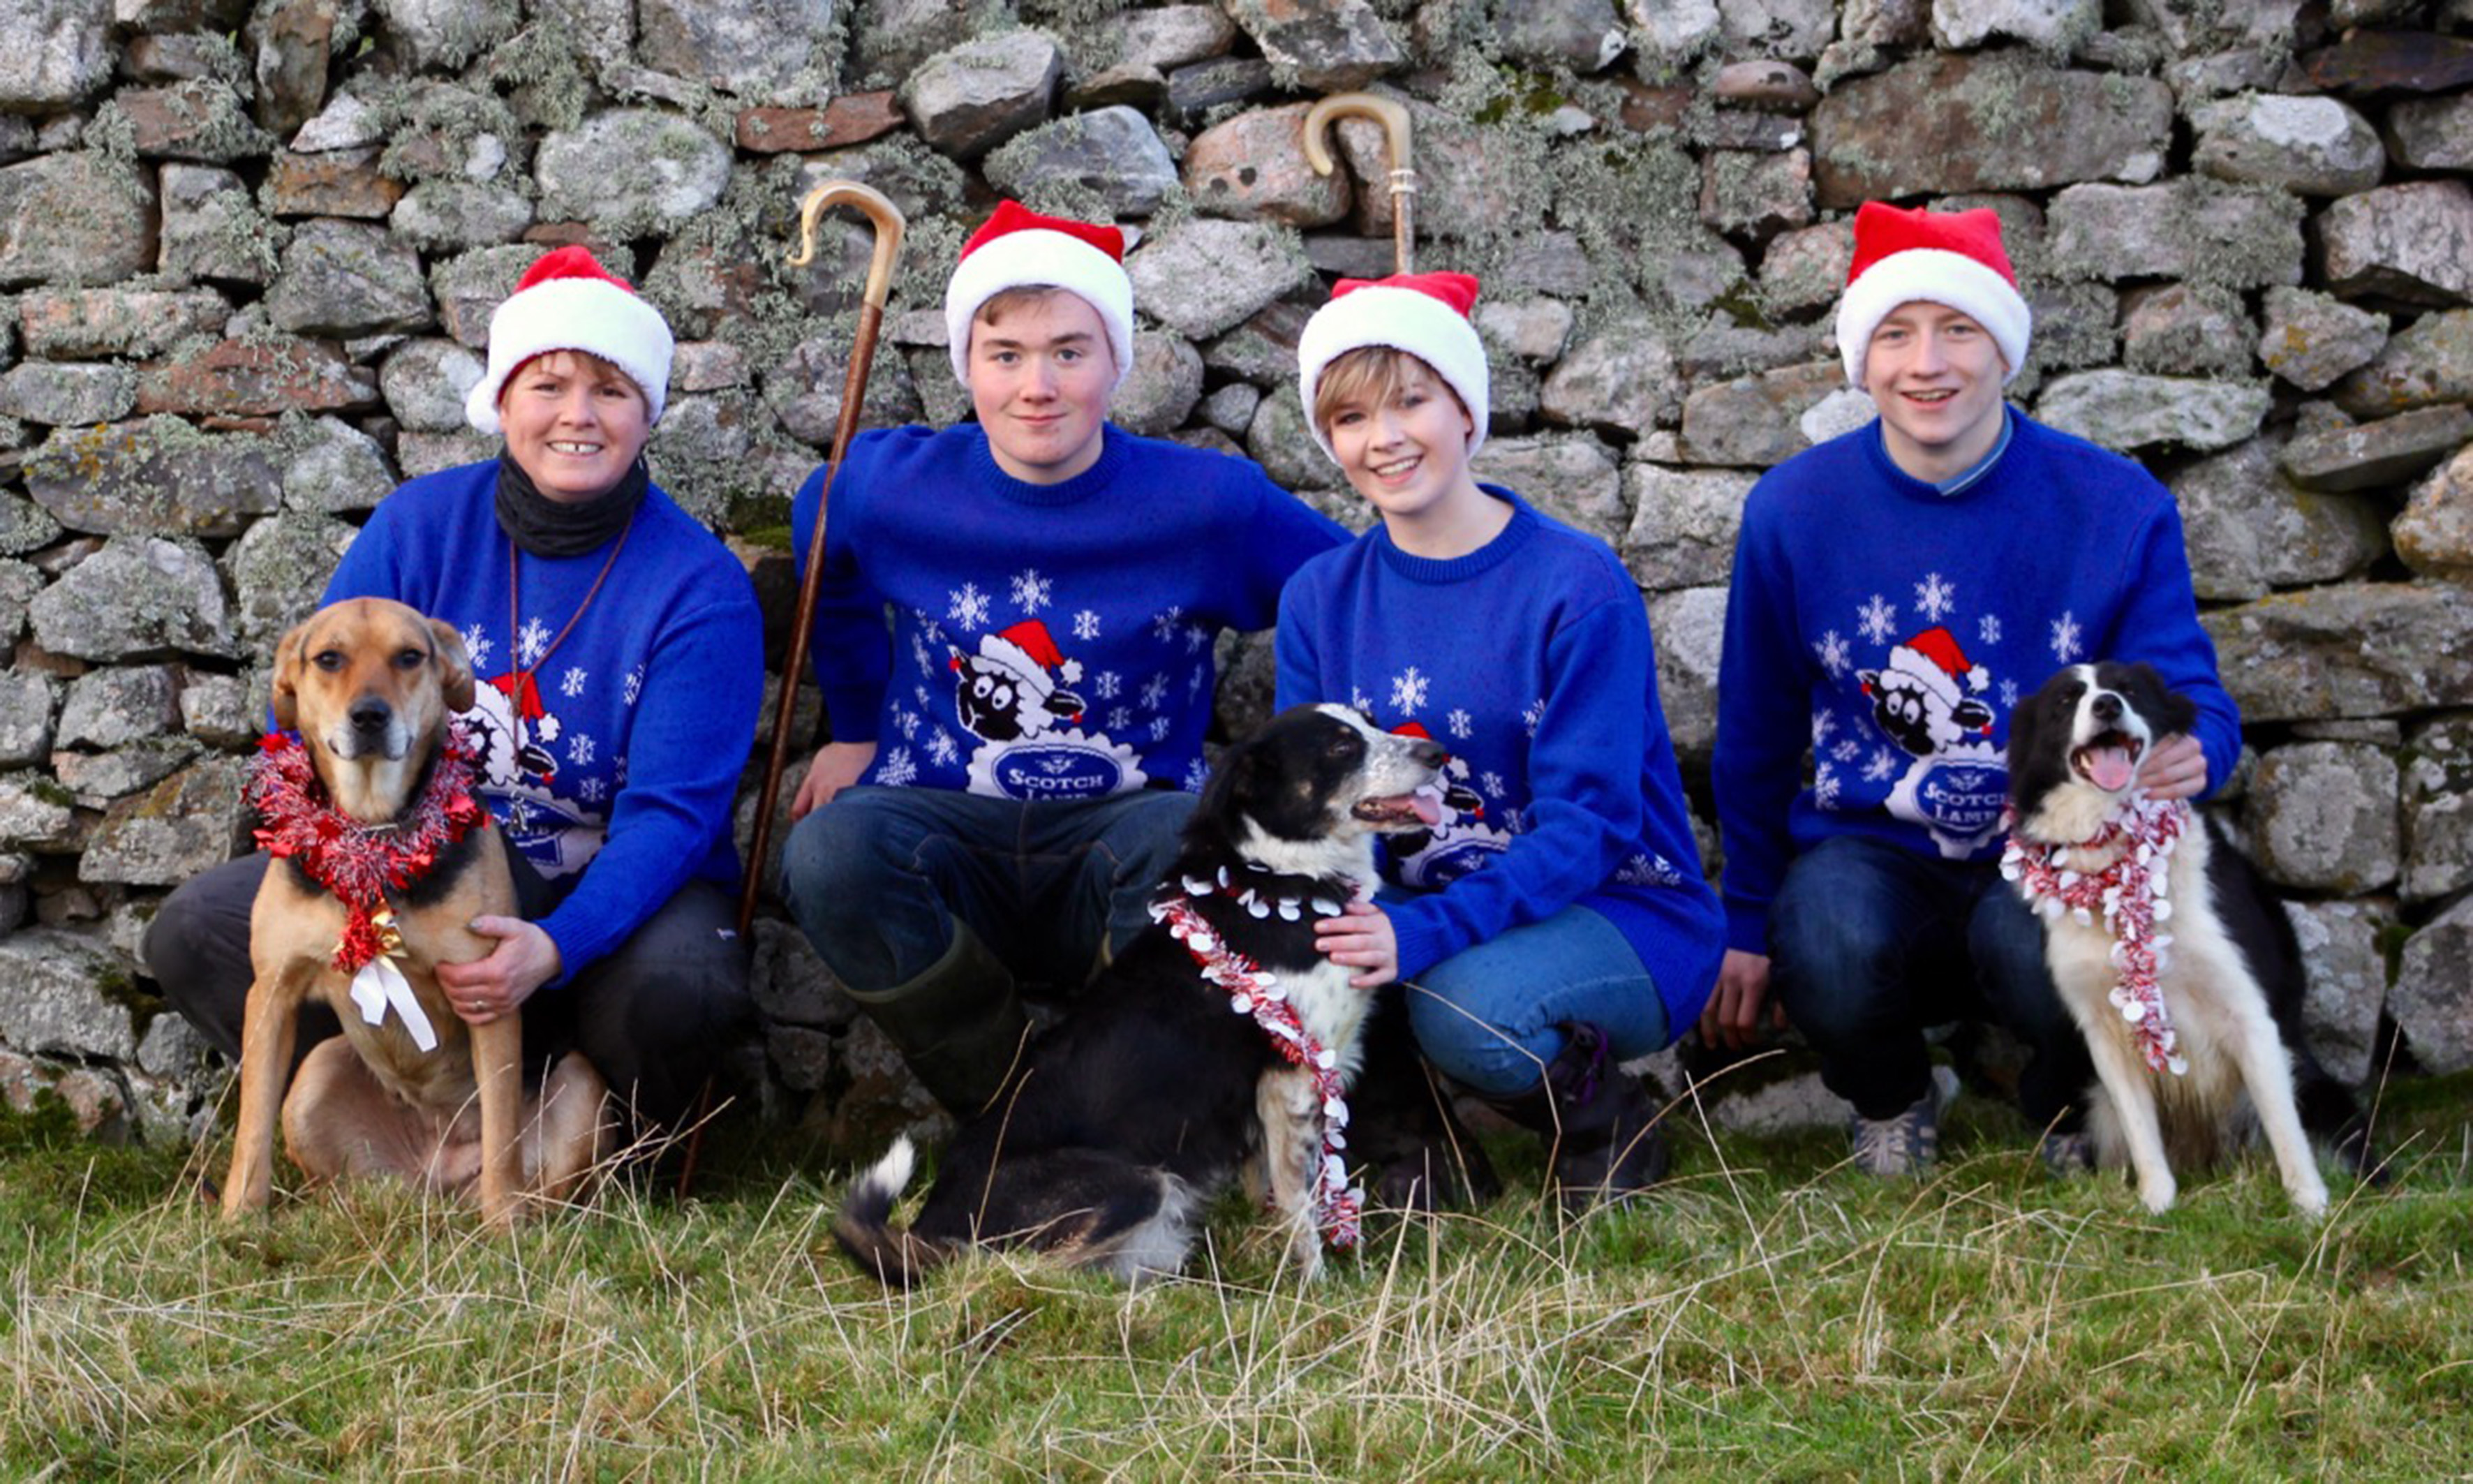 Joyce Campbell, Mure Grant, Frances Grant and Stephen Forbes with canine team members Jude, Sky and Meg.